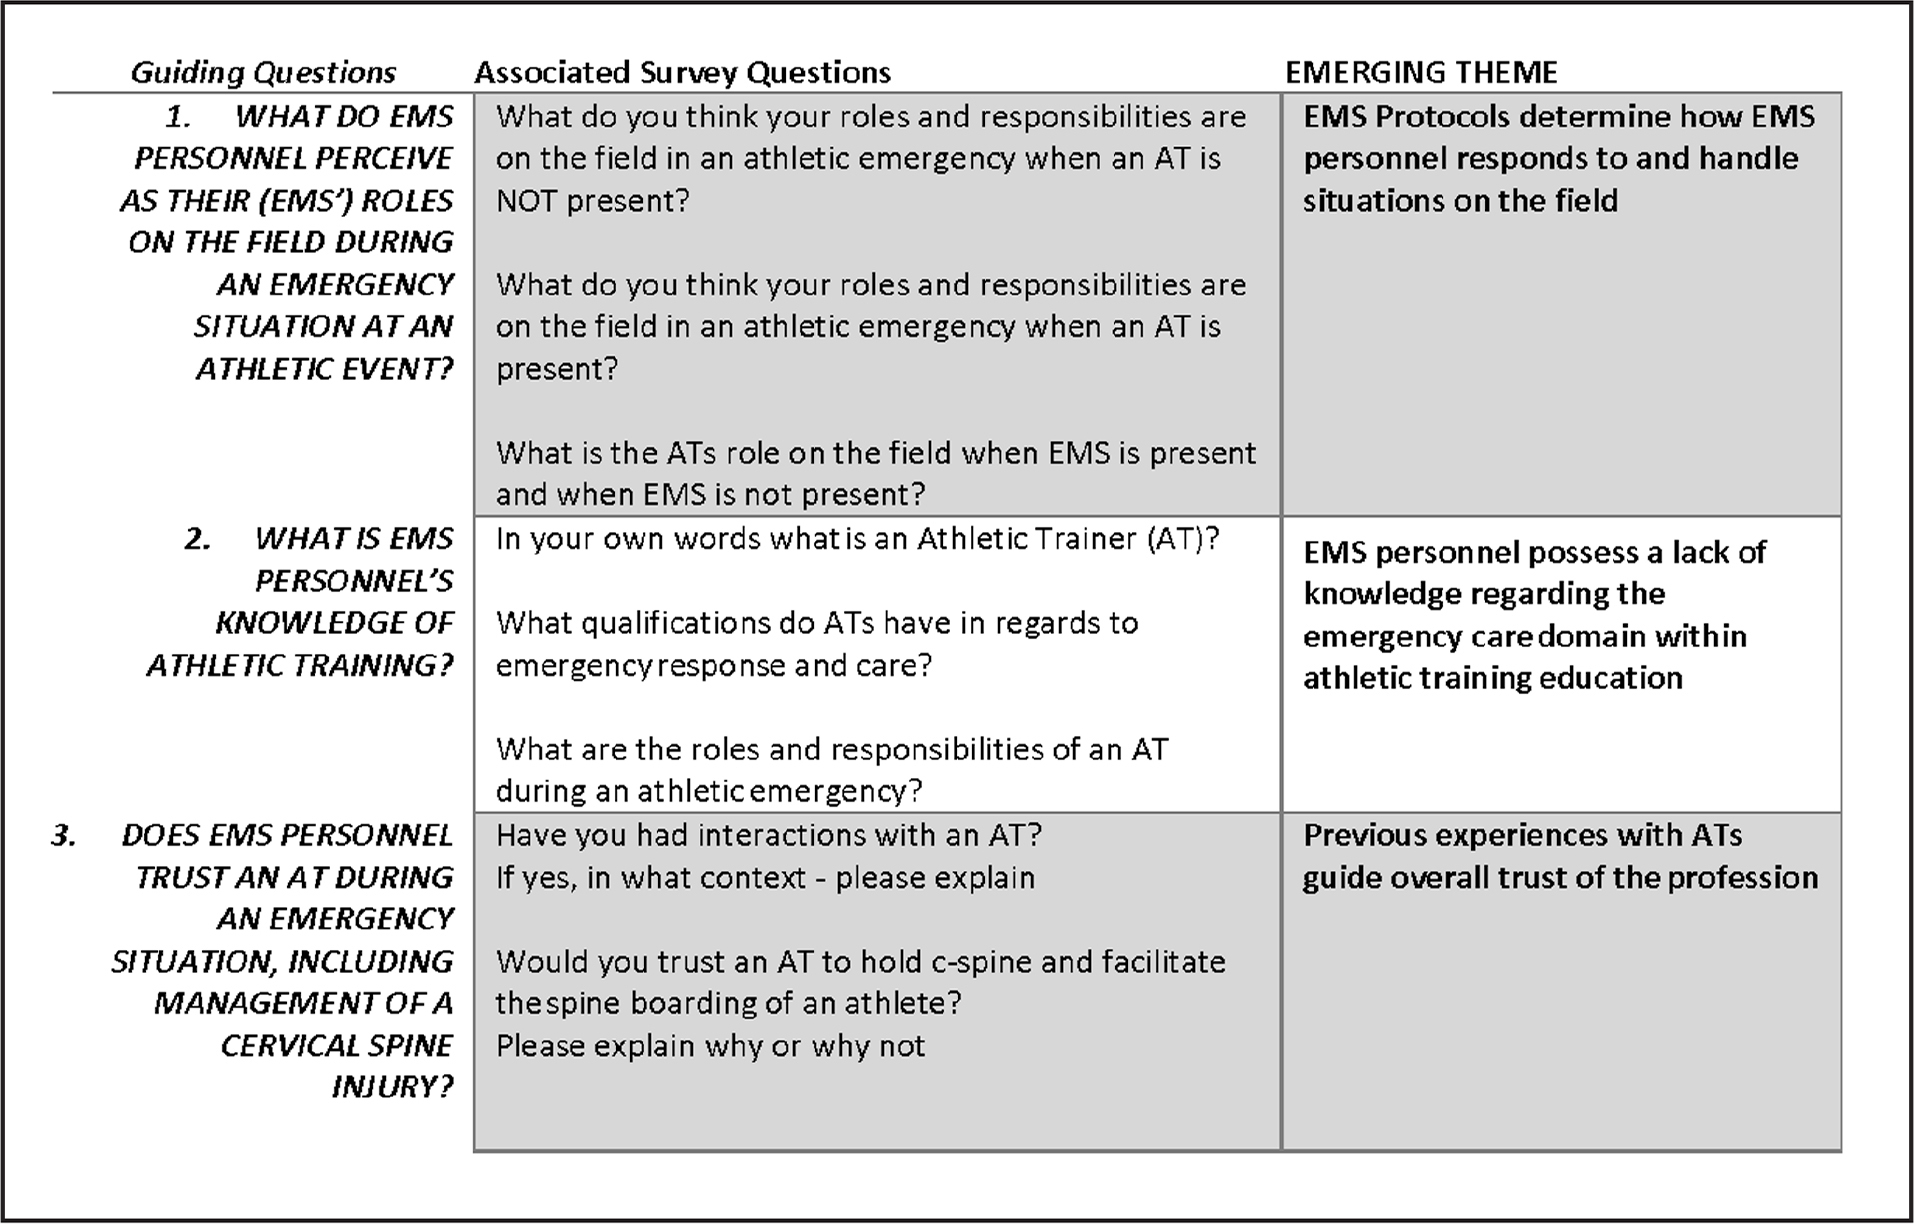 Guiding questions, associated survey questions, and emerging themes.